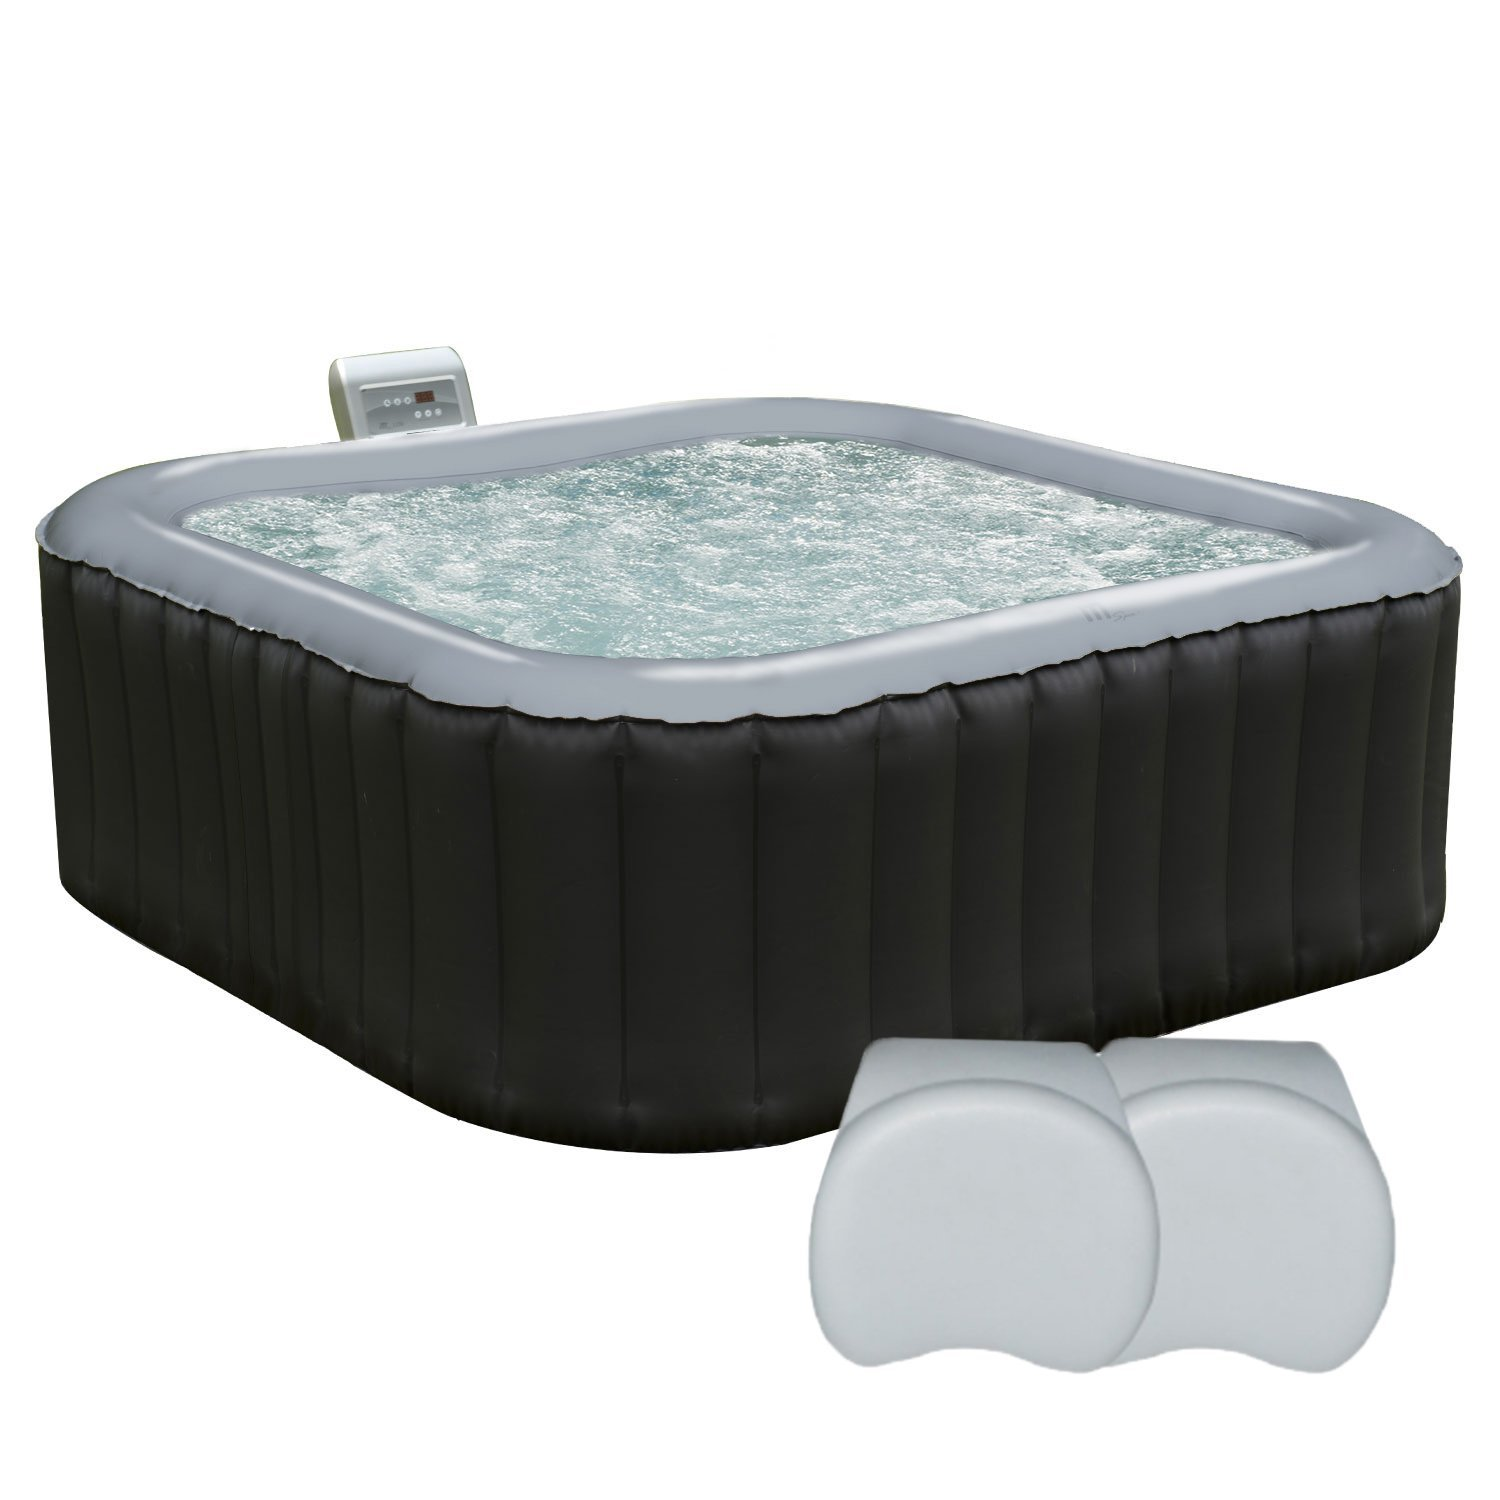 spa gonflable comparatif de spa et de jacuzzi gonflable. Black Bedroom Furniture Sets. Home Design Ideas